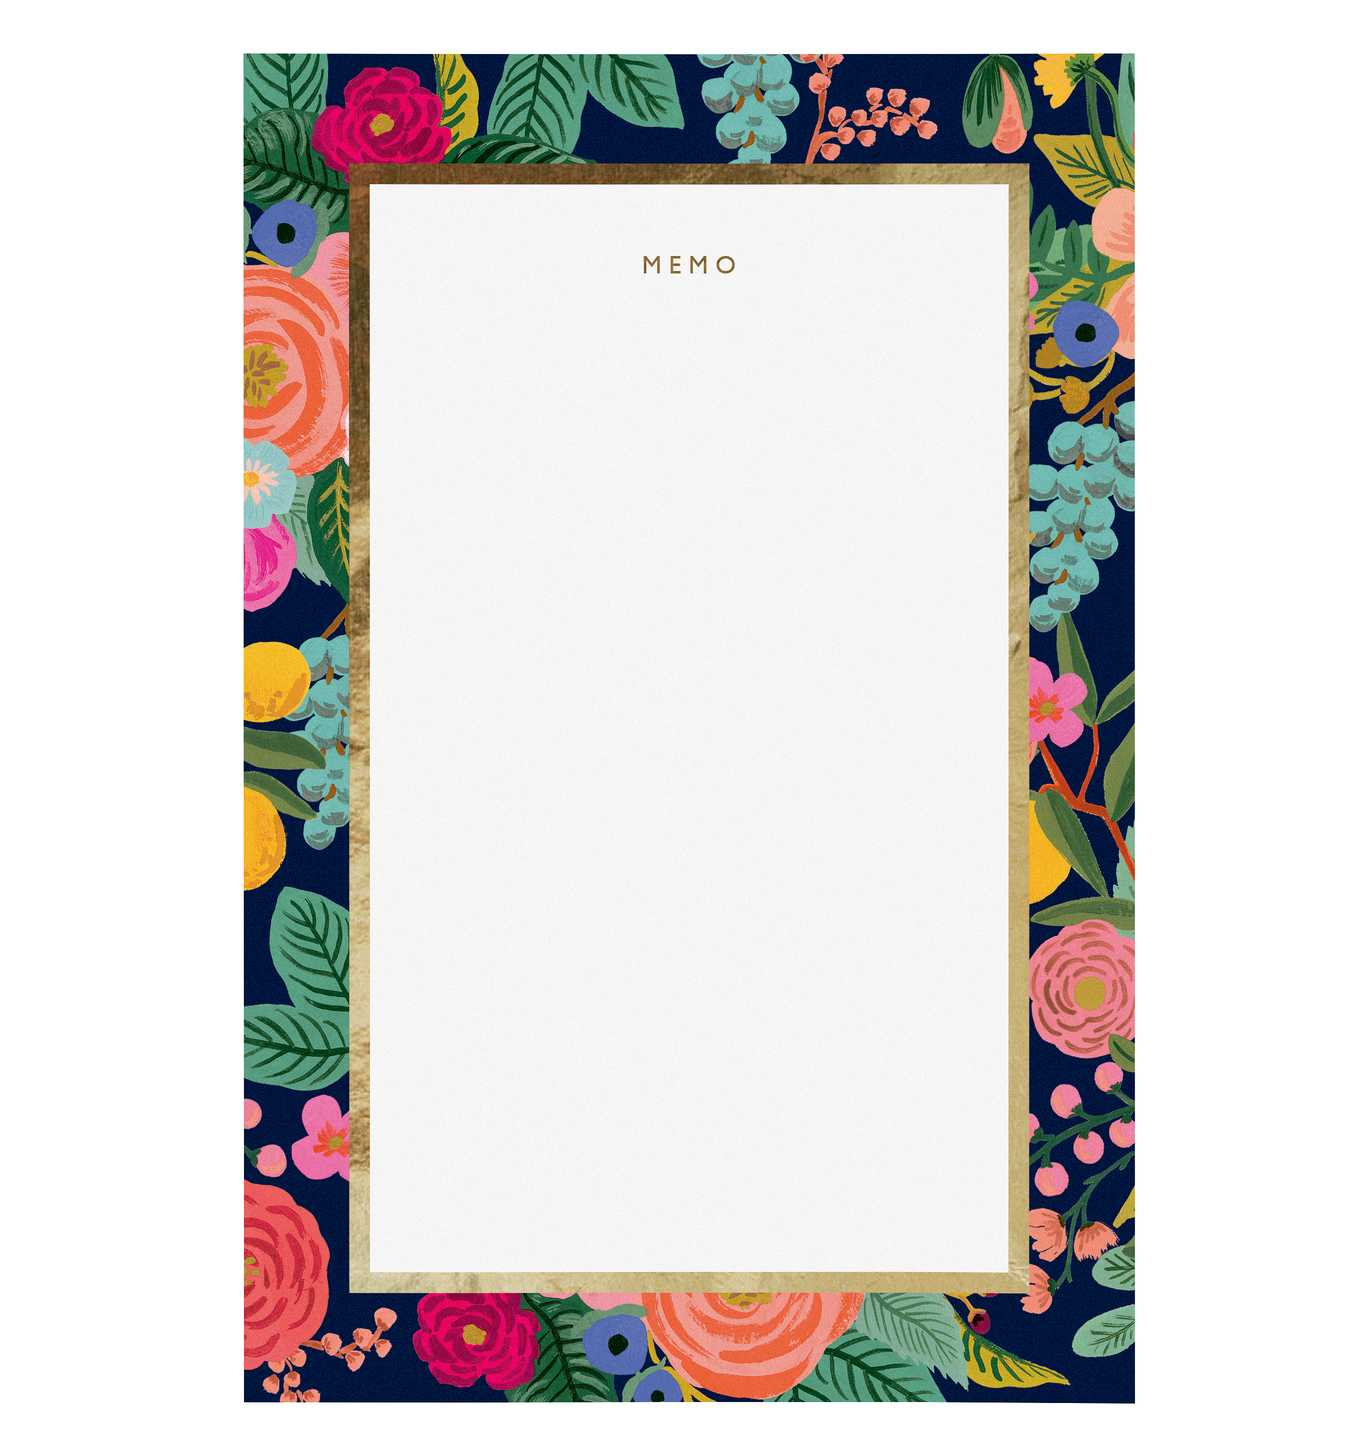 RIFLE - Memo Pad, Garden Party